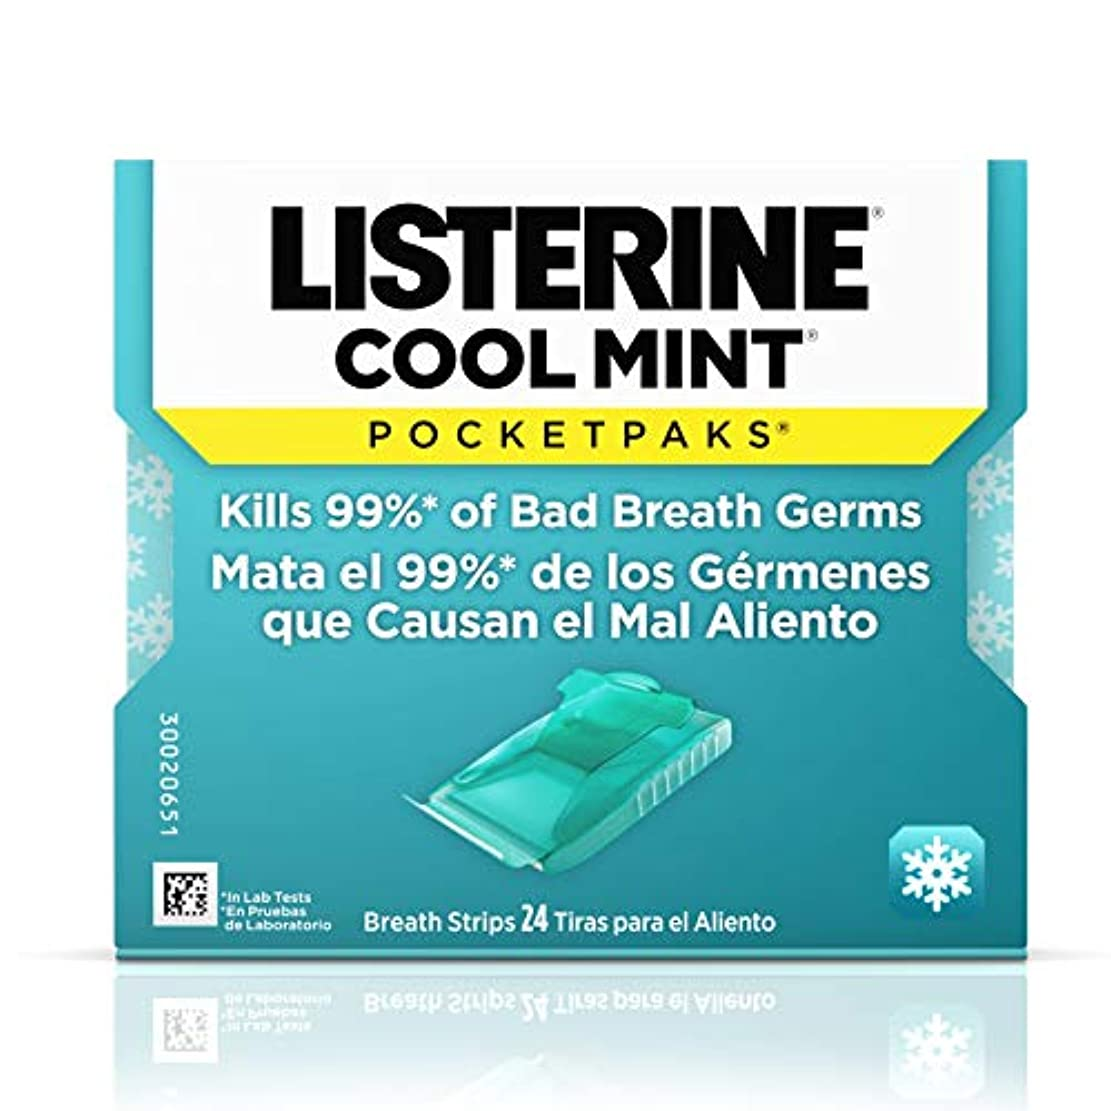 記念碑的な転送特異なリステリン Listerine Pocketpaks Breath Strips Cool Mint 24-Count (Pack of 12)